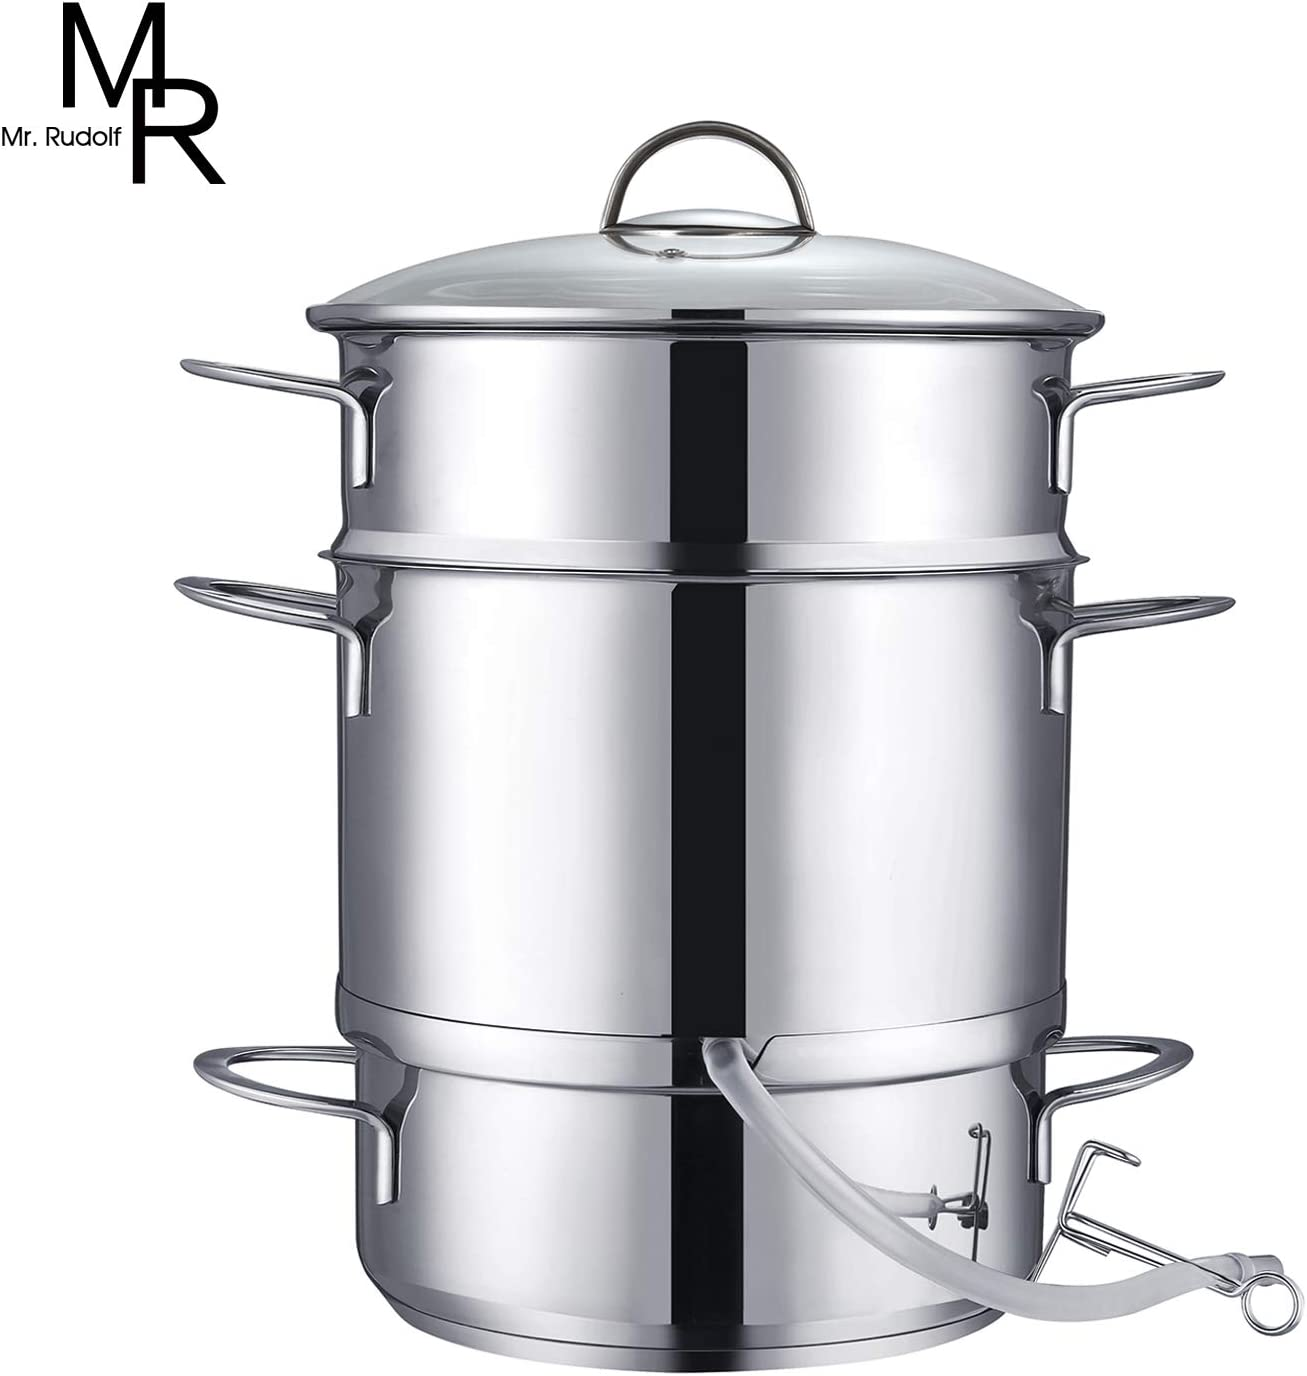 Mr. Rudolf 26cm 11-Quart Stainless Steel Fruit Juicer Steamer Multipot, Silver